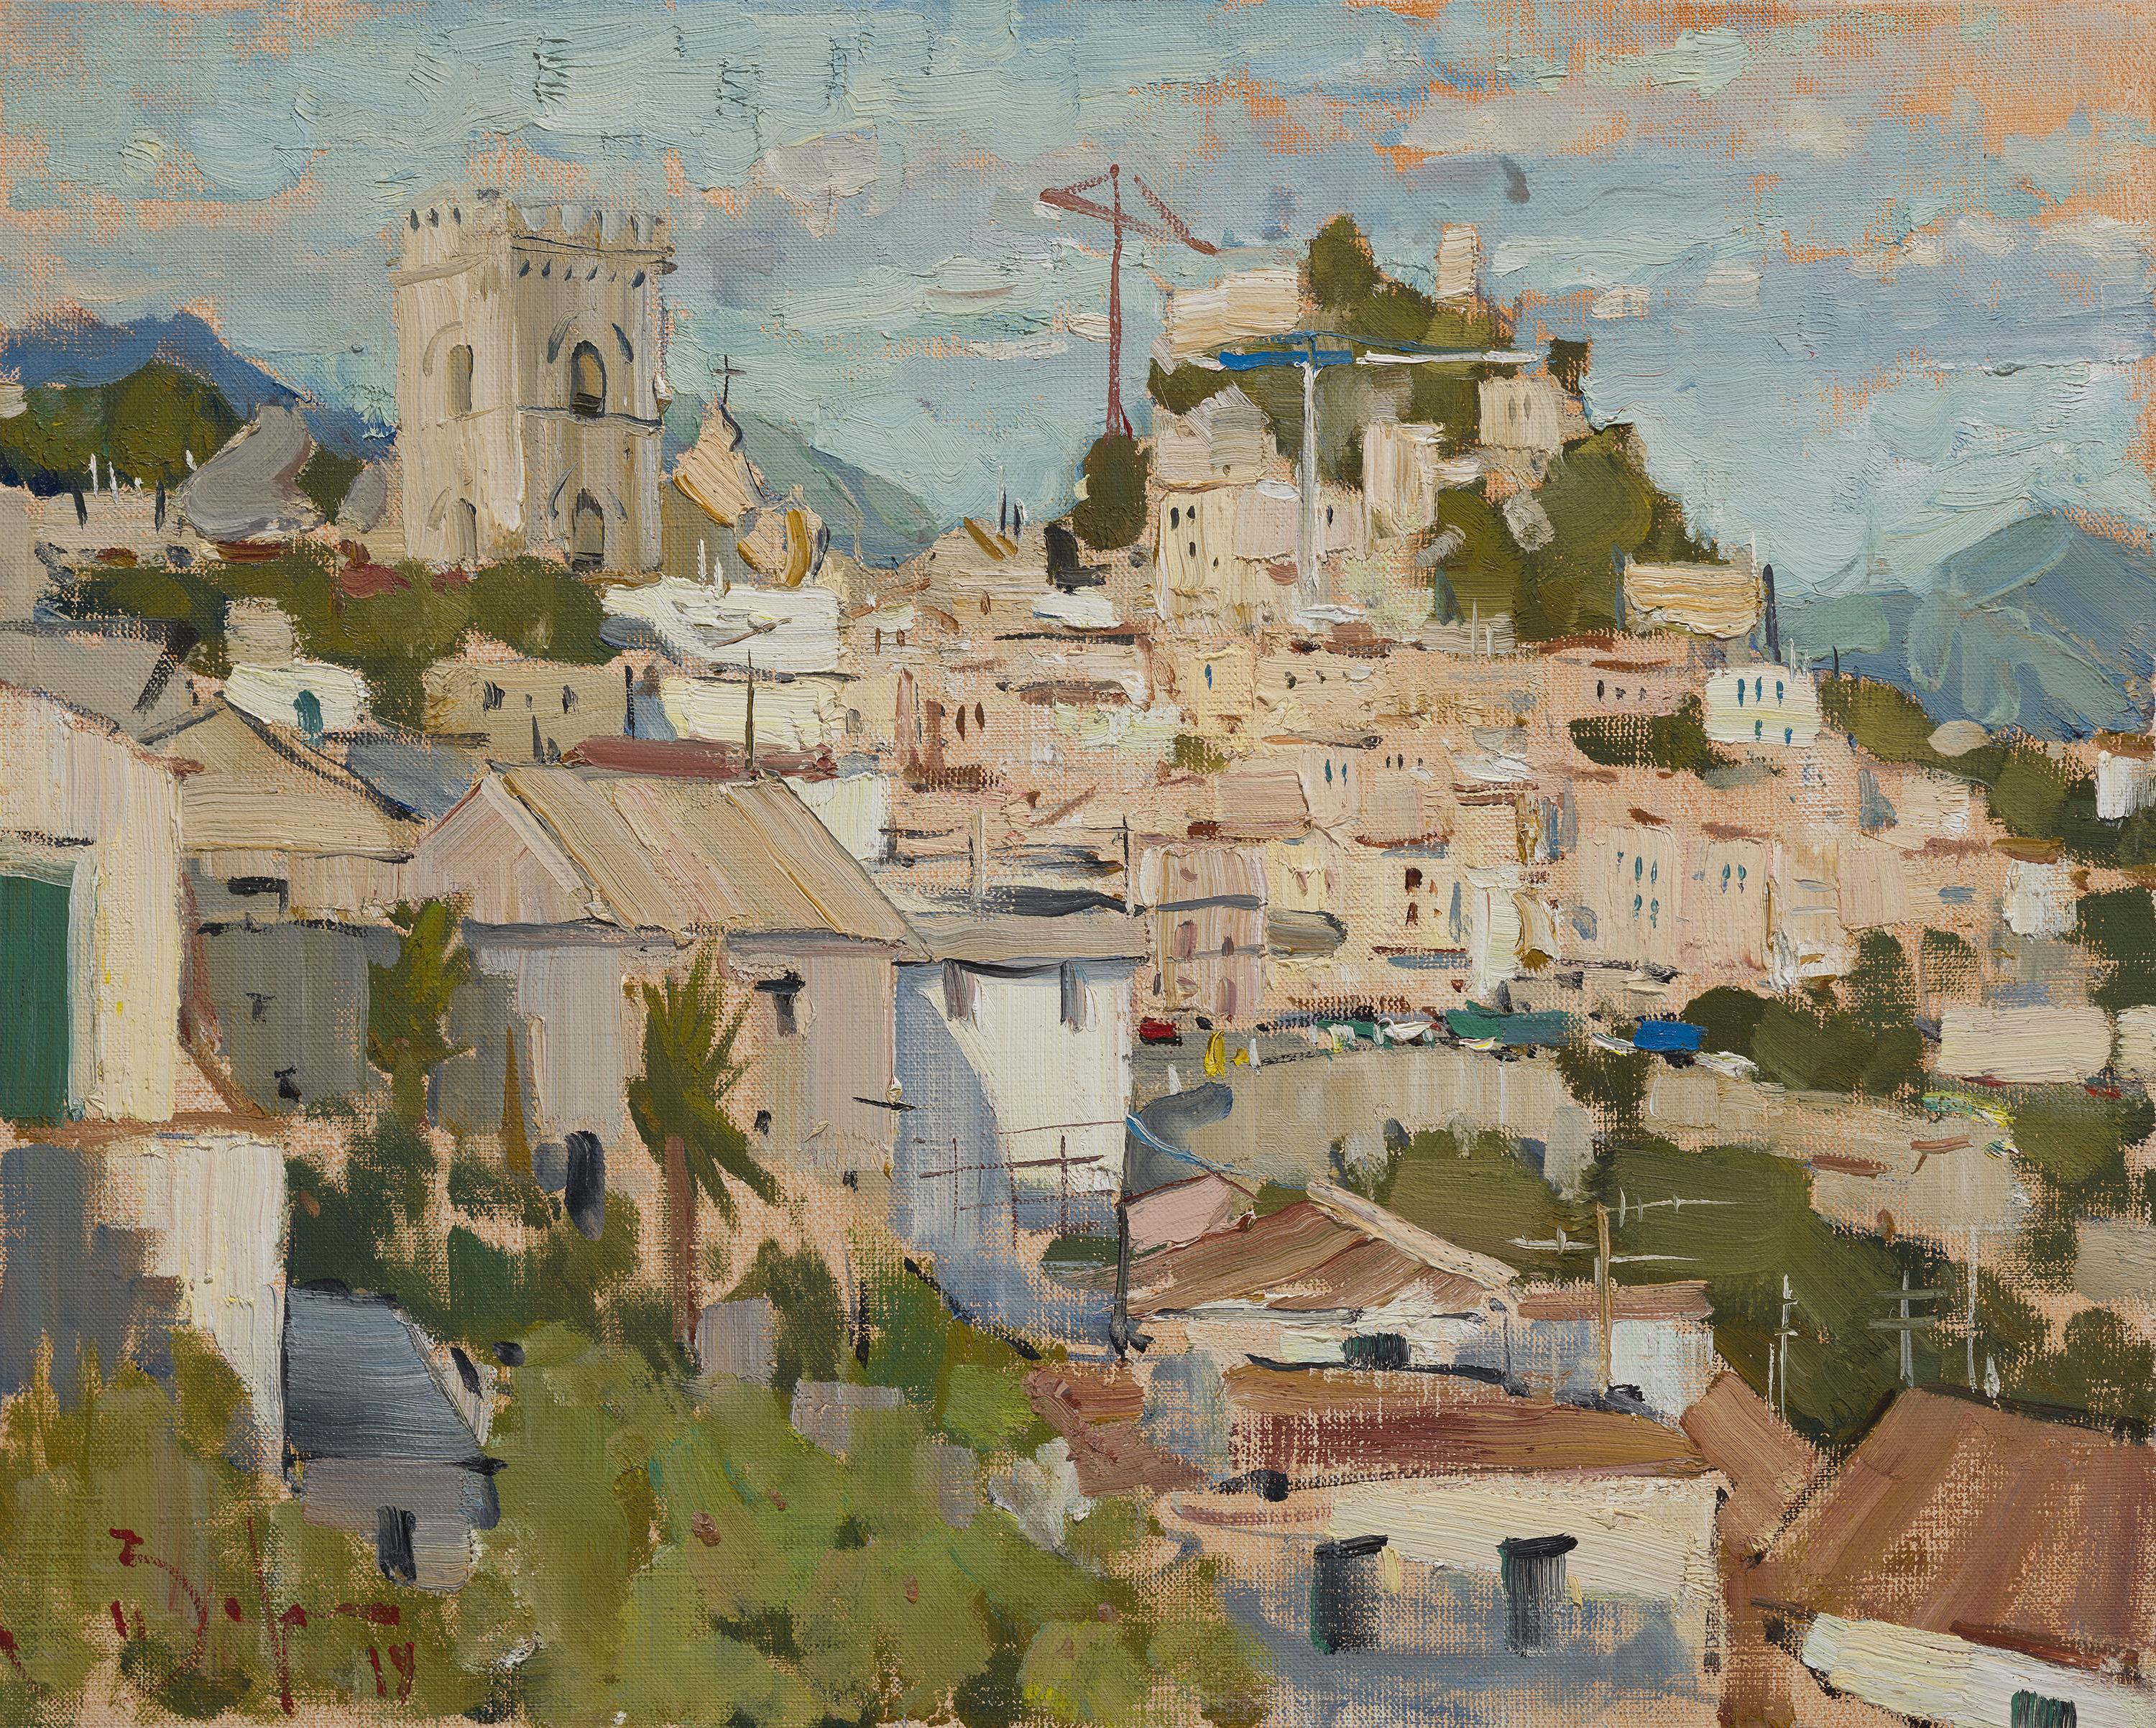 Forza d'Agro - 21st Century Contemporary Italian Vilage Landscape Oil Painting